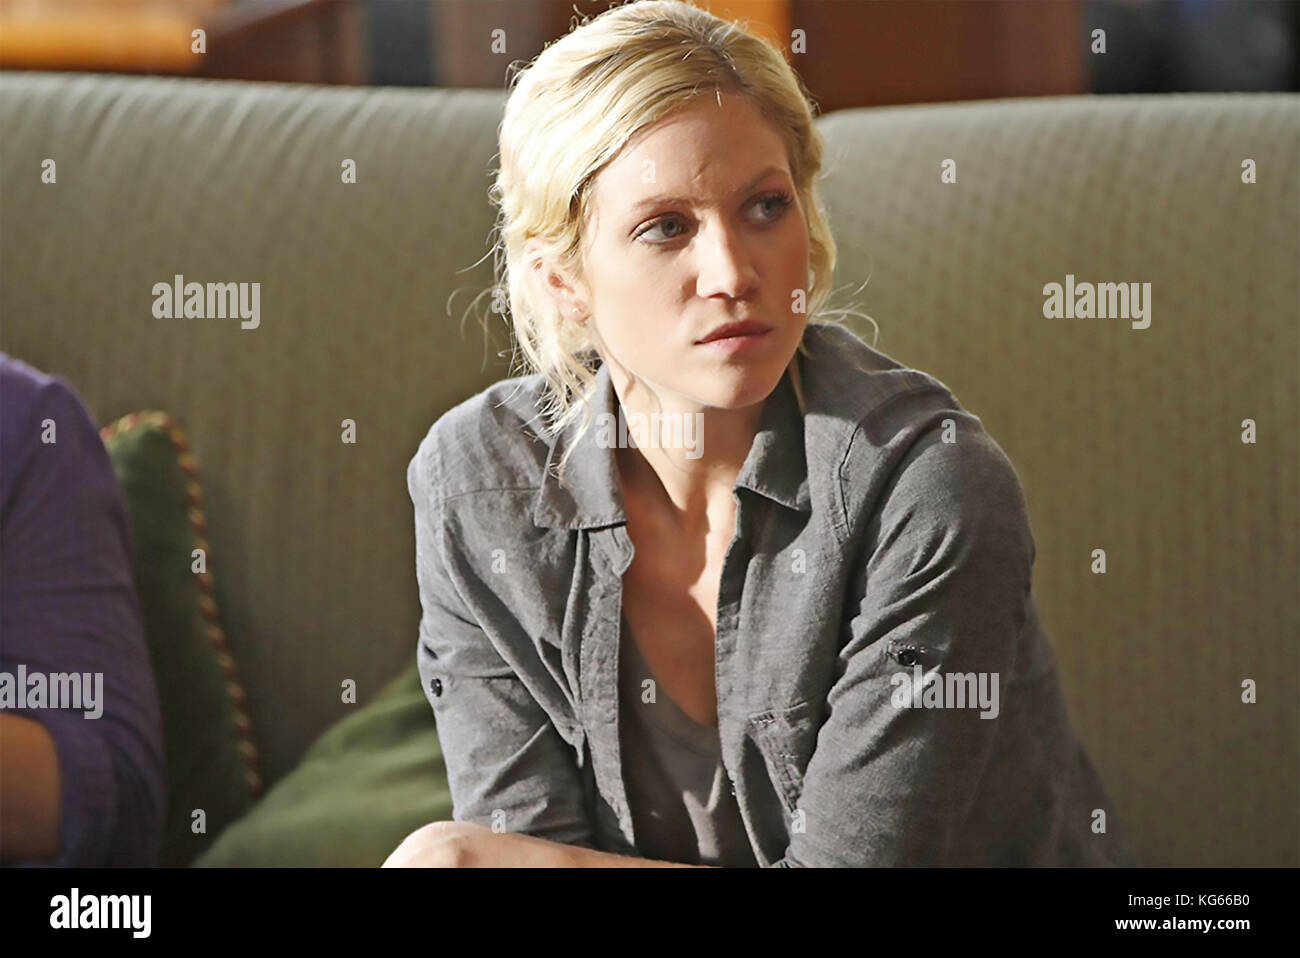 96 MINUTES 2011 First Point Entertainment film with Brittany Snow - Stock Image